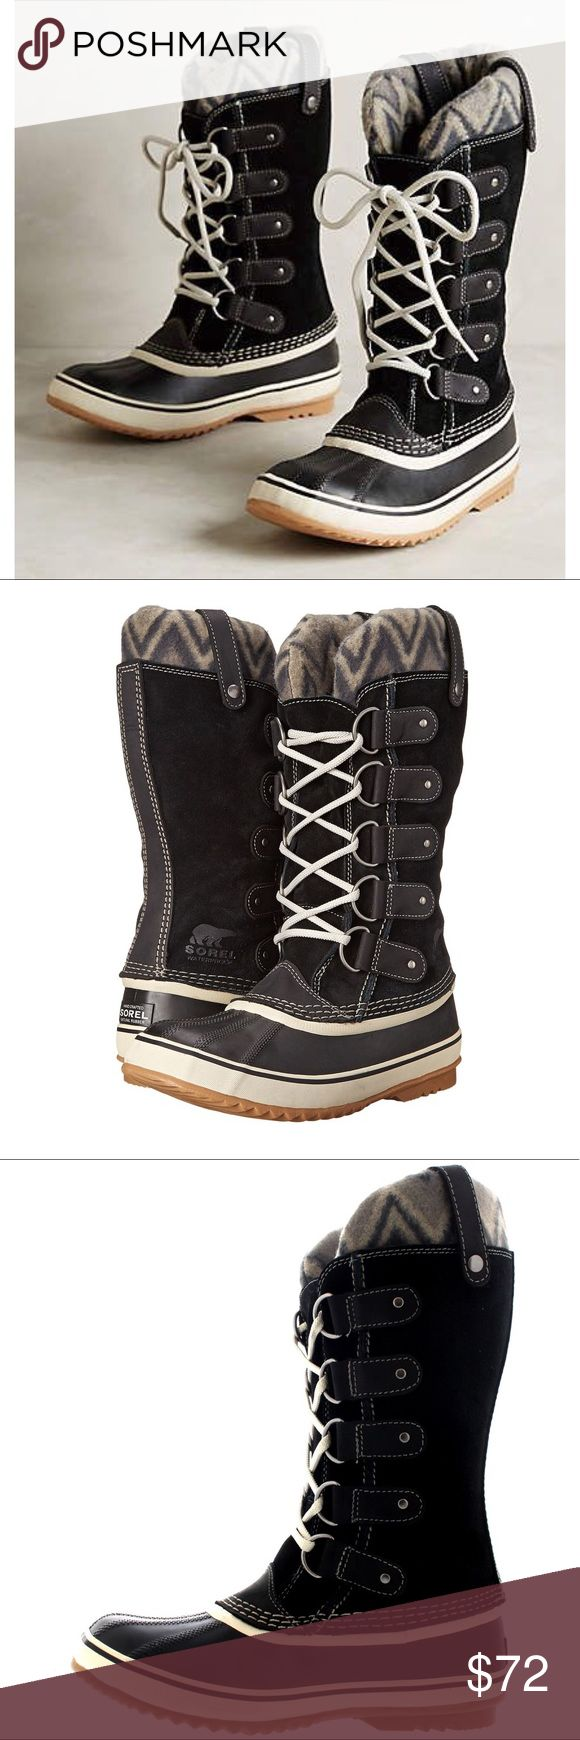 ONE DAY SALE! NWT Sorel Joan of Arctic Knit Black Beautiful waterproof suede leather boot size 8 by Sorel. New with tags, no box Sorel Shoes Winter & Rain Boots